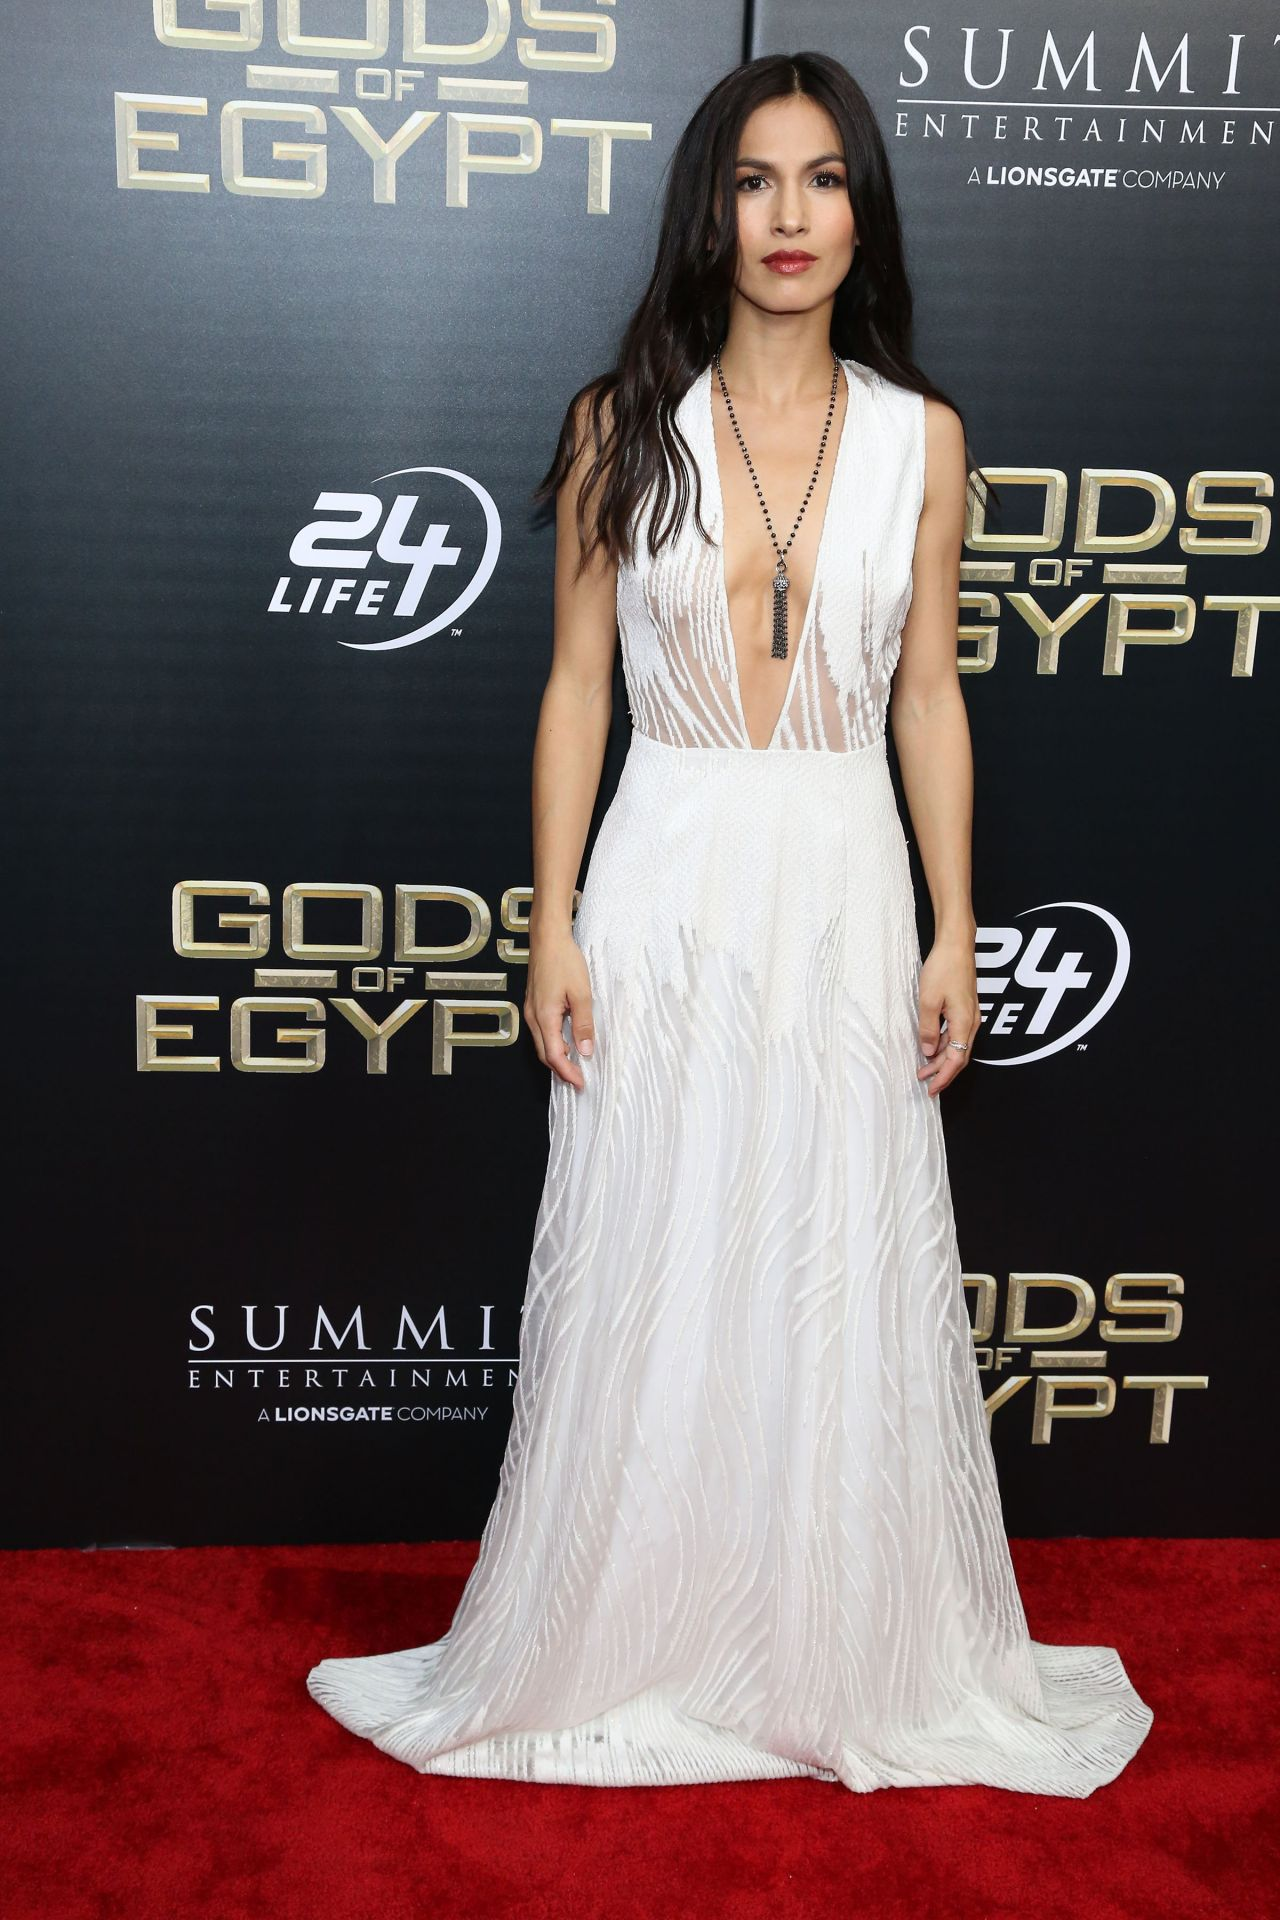 elodie yung and boyfriendelodie yung egypt, elodie yung listal, elodie yung wiki, elodie yung age, elodie yung icons, elodie yung and boyfriend, elodie yung bellazon, elodie yung imdb, elodie yung instagram, elodie yung relationships, elodie yung family, elodie yung, elodie yung facebook, elodie yung daredevil